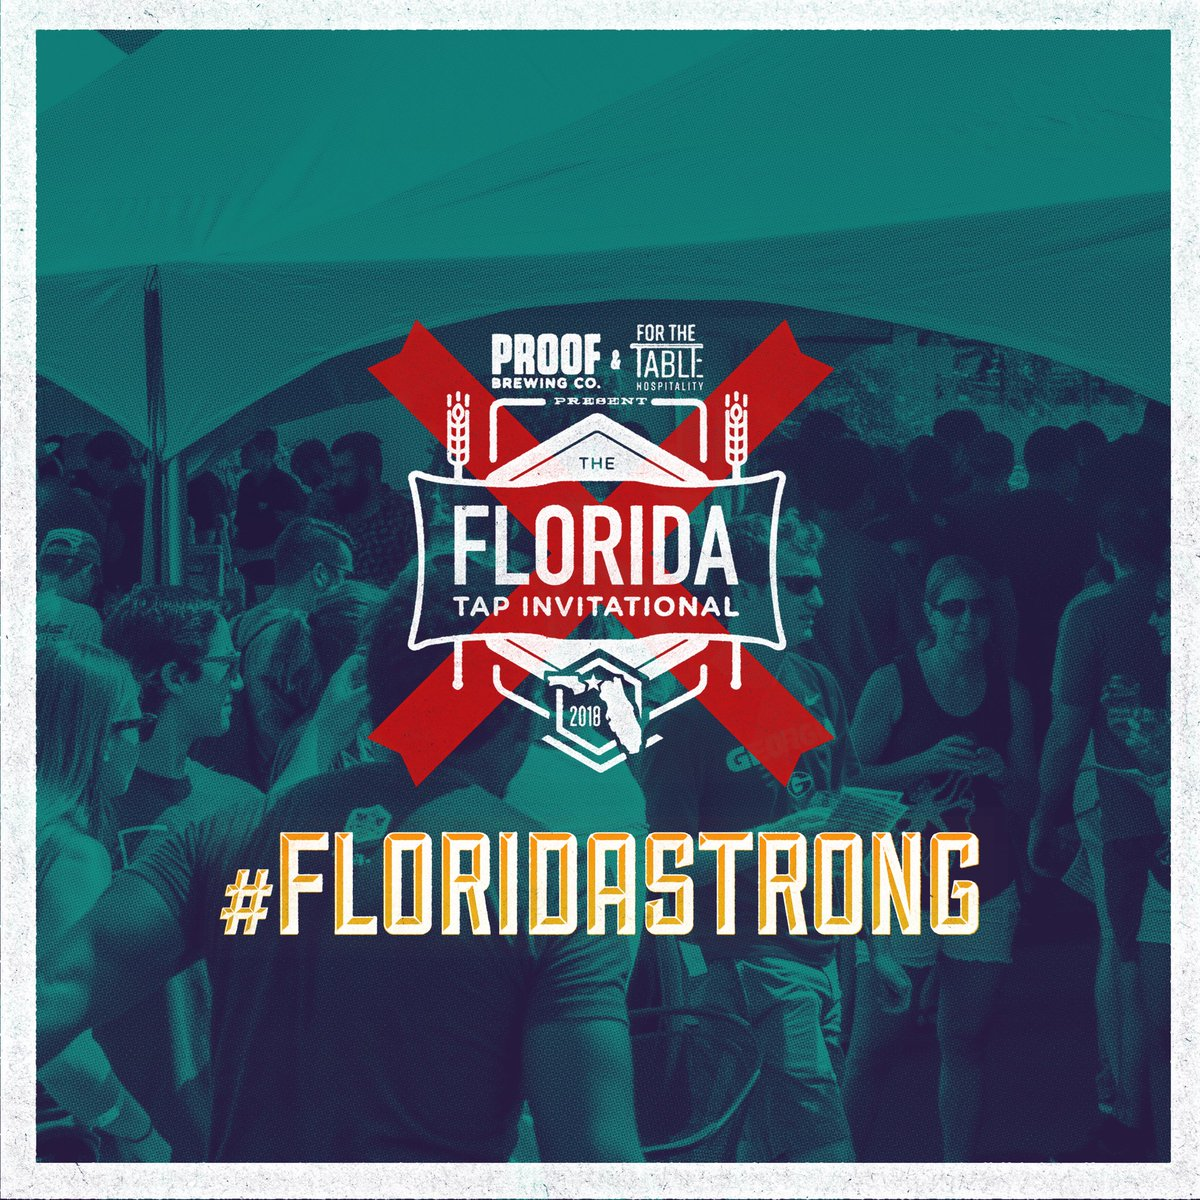 Our neighbors in the Florida panhandle were hit hard by Hurricane Michael. To help with relief efforts, a portion of the proceeds from Florida Tap Invitational 2018 ticket sales will be donated to @VolunteerFla   http:// FLTapInvitational.com  &nbsp;   #FloridaStrong<br>http://pic.twitter.com/Bfyqmi9jM4